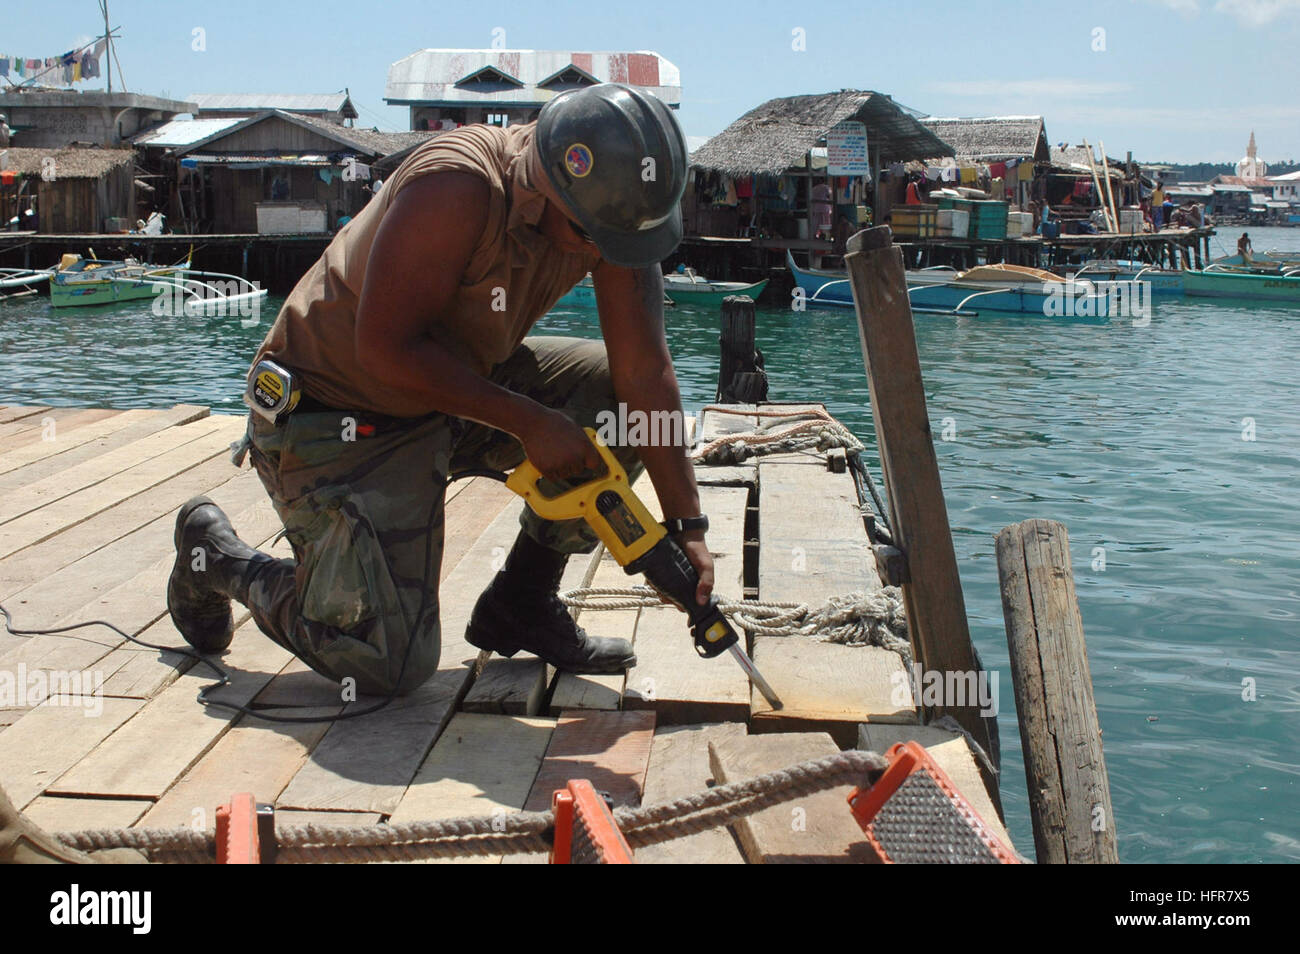 060617-N-9076B-181 Tawi Tawi, Philippines (June 17, 2006) -Navy Builder 3rd Class Juston Haller assigned to Naval Stock Photo